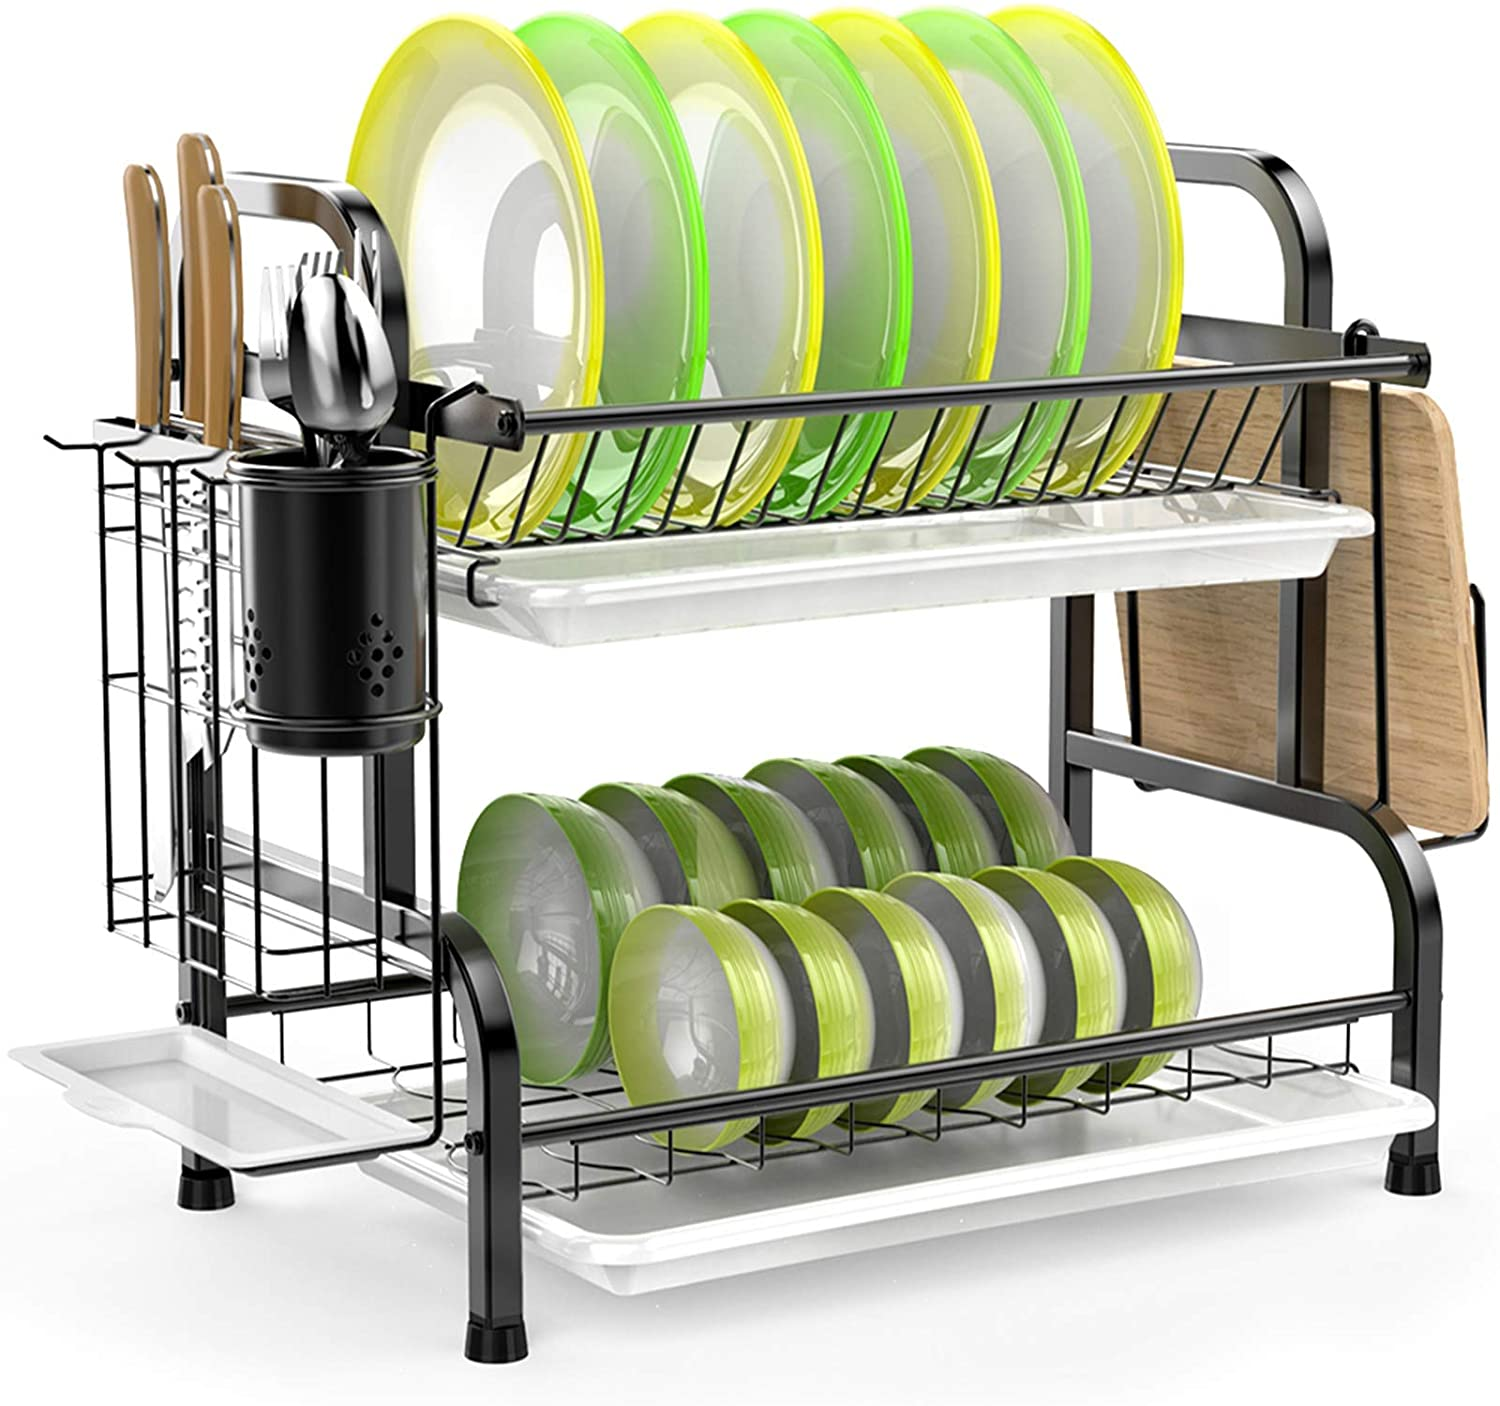 Review of Dish Drying Rack, iSPECLE 304 Stainless Steel 2-Tier Dish Rack